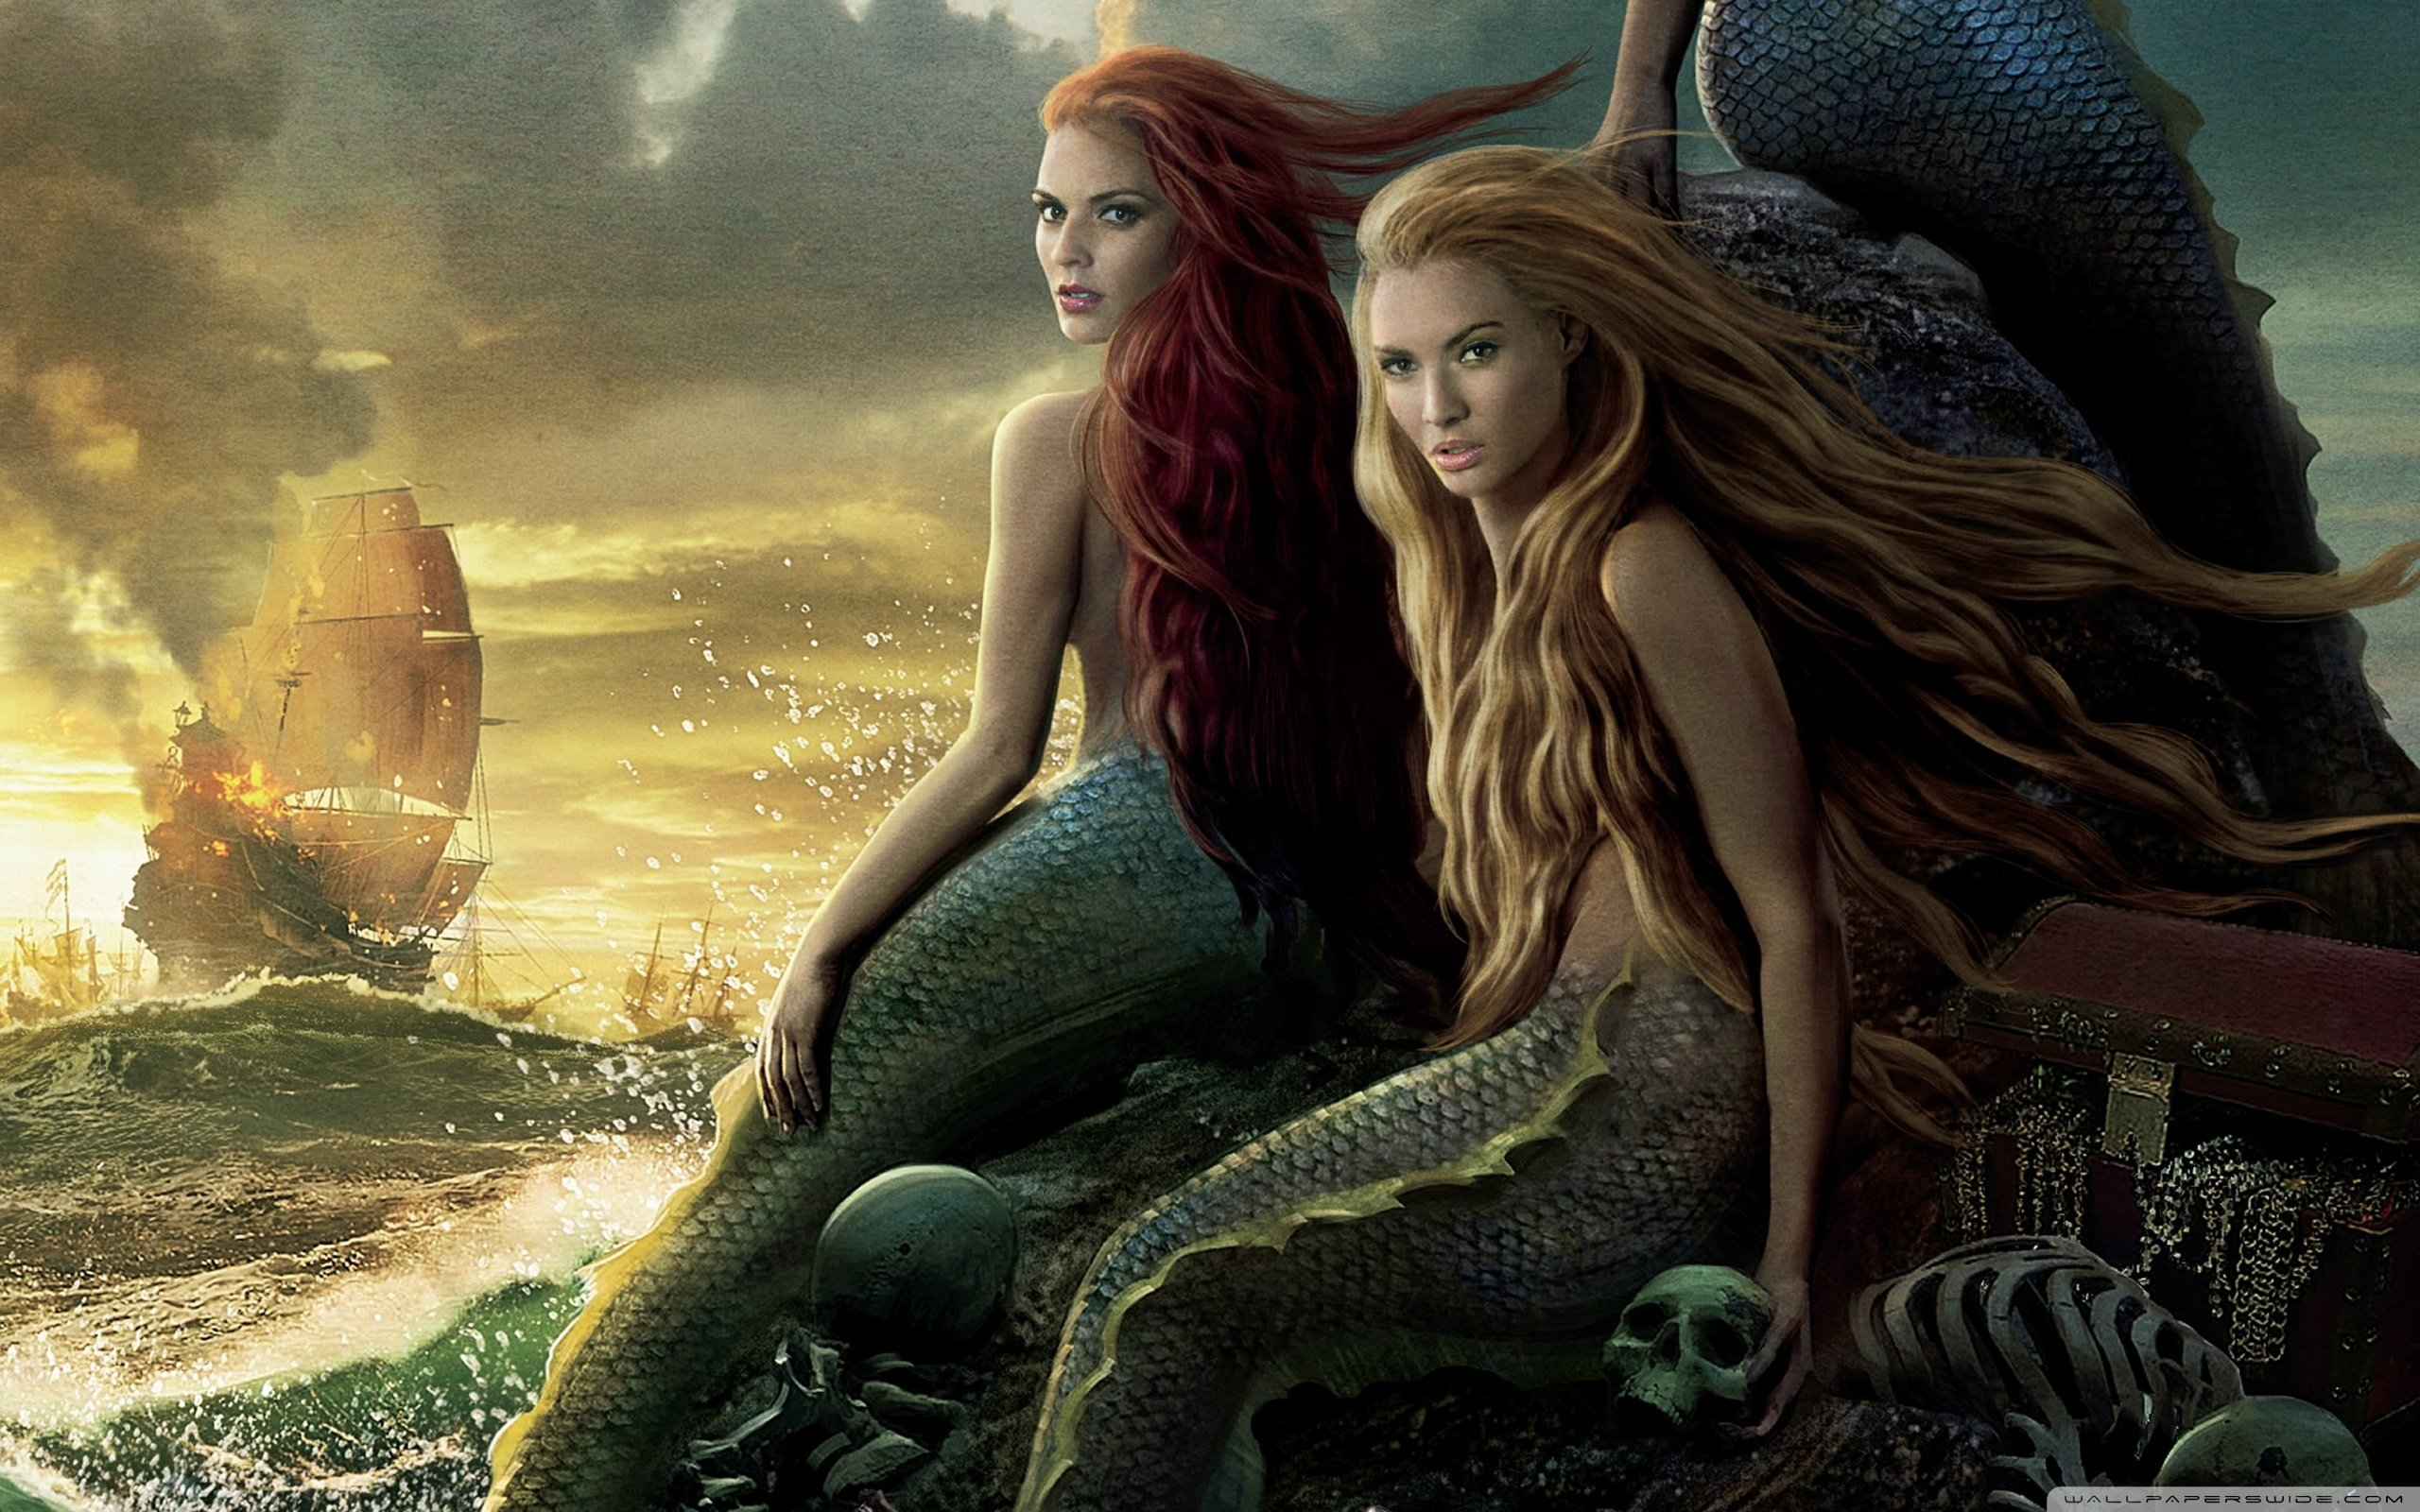 That Mermaids In Russian Mythology 34